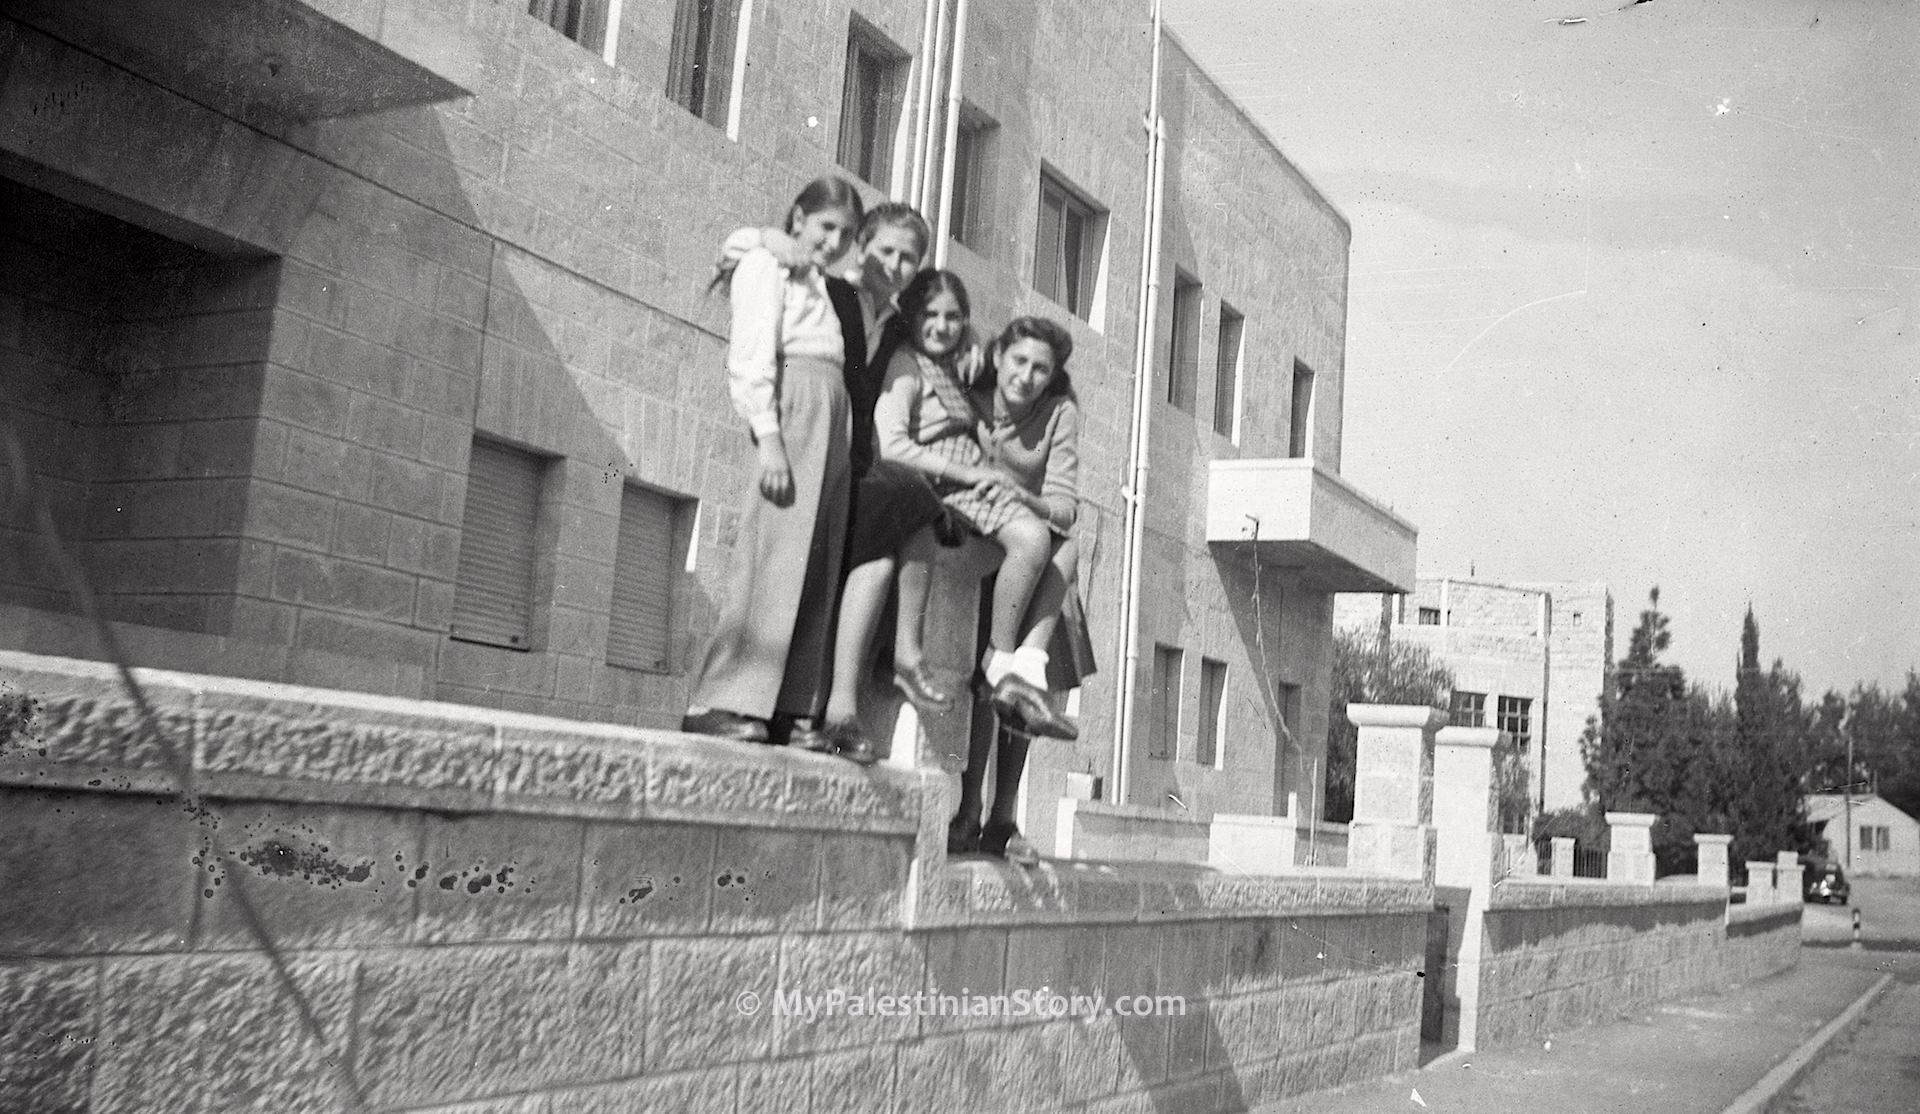 Mary, Anna, Jenny, Feely perched on a fencing wall in Katamon